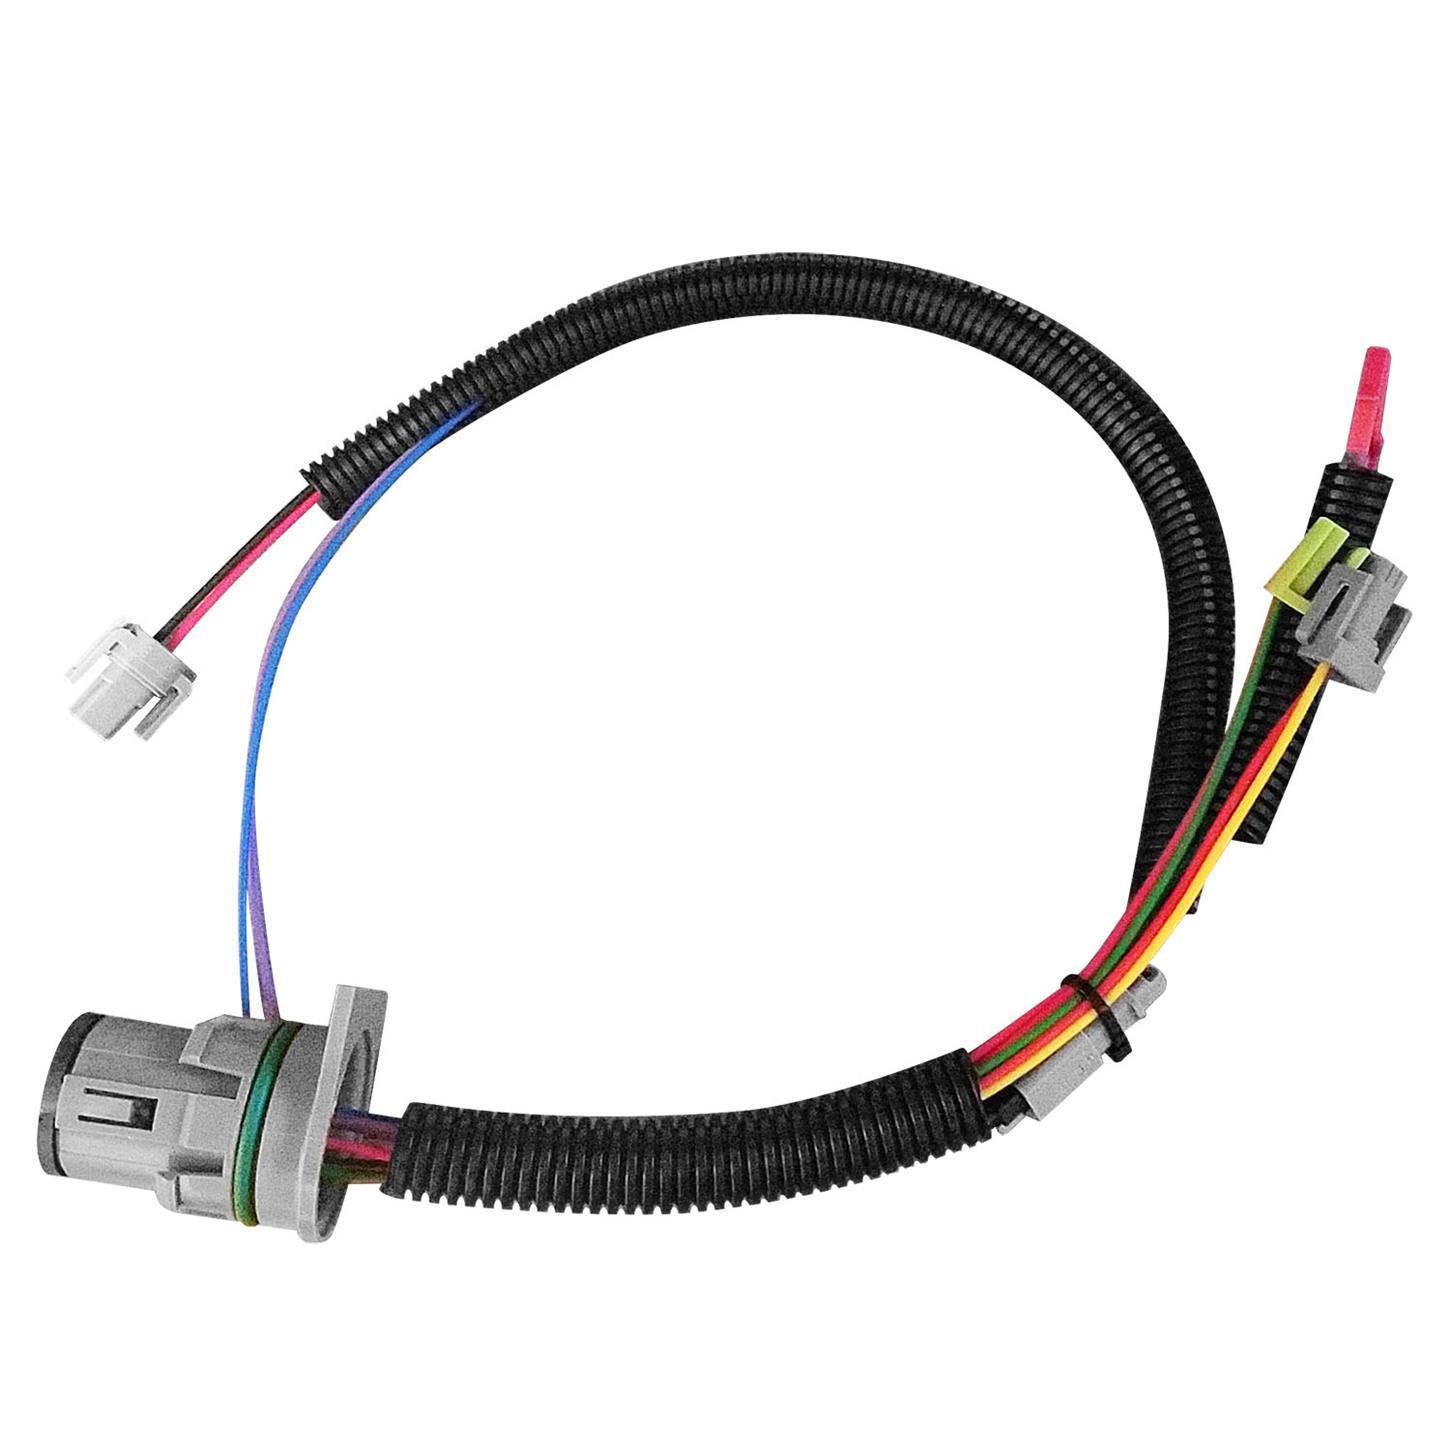 hight resolution of b m 120003 replacement internal wiring harness for gm 4l80e 4l80e external wiring harness 200120003 l1450 deeab39c bf9a 4b4d